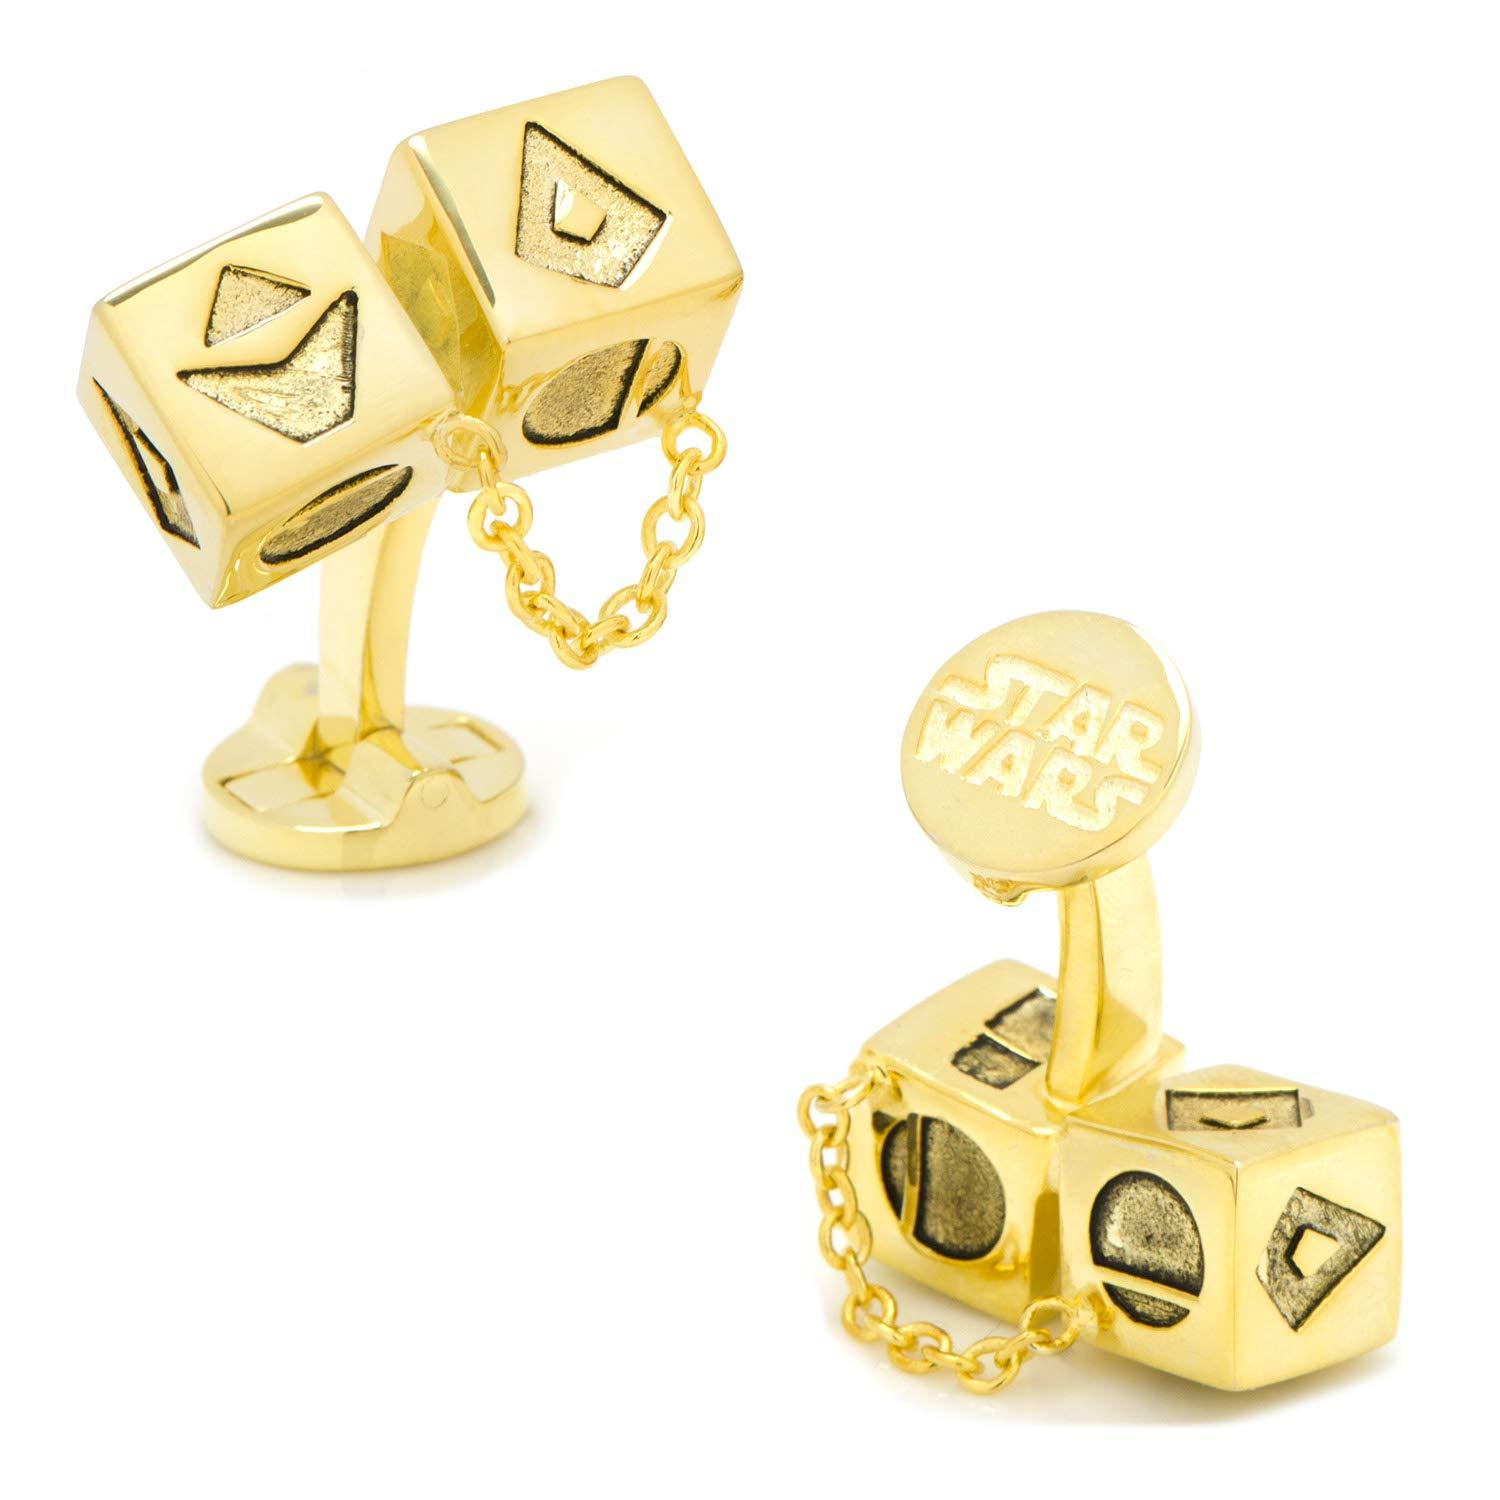 Star Wars Solo Gold Dice 3D Cufflinks, Officially Licensed